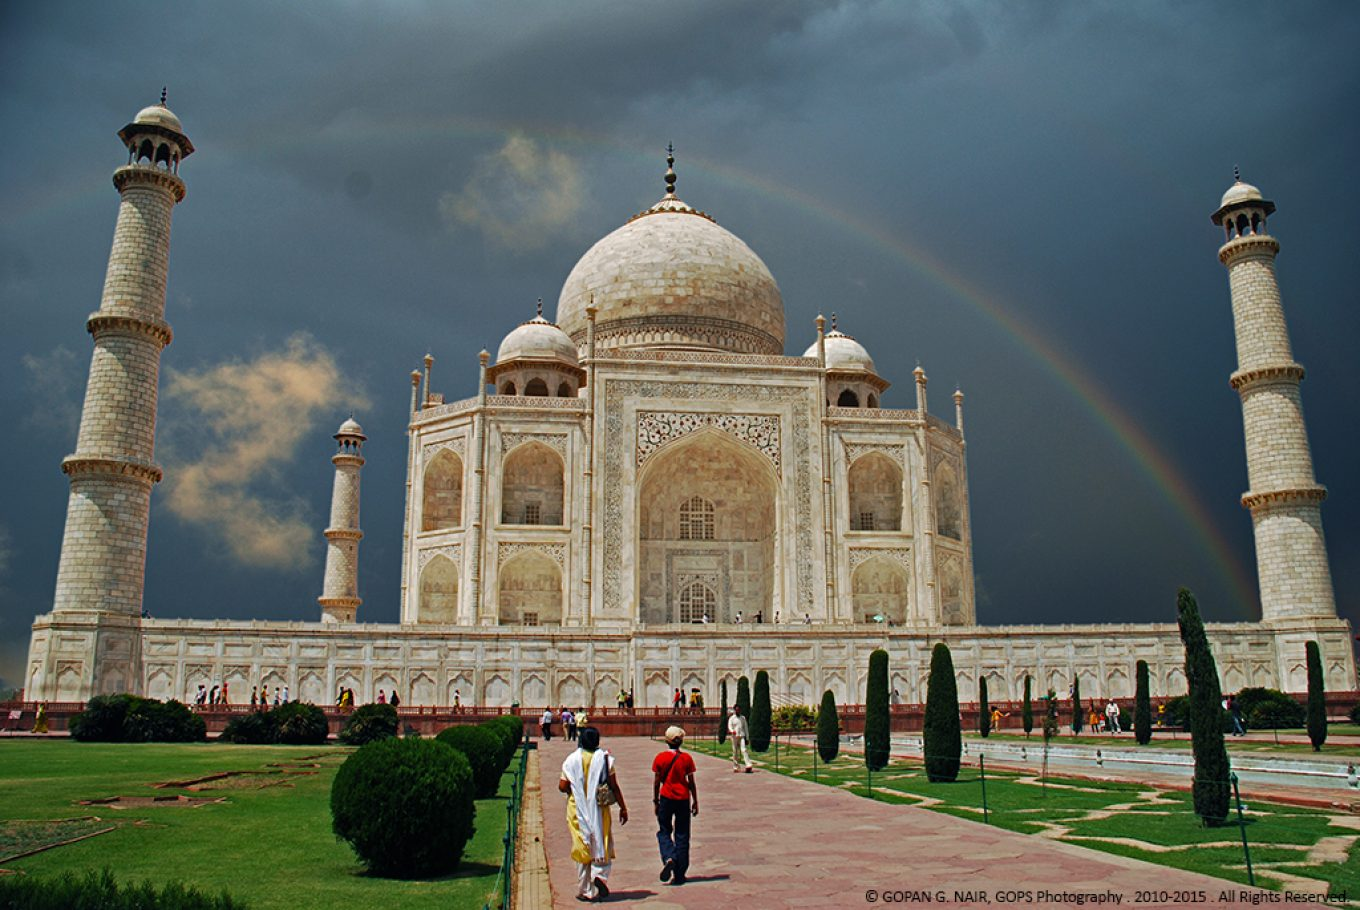 THE MOST PHOTOGRAPHED MONUMENT IN THE WORLD ! TAJ MAHAL, INDIA